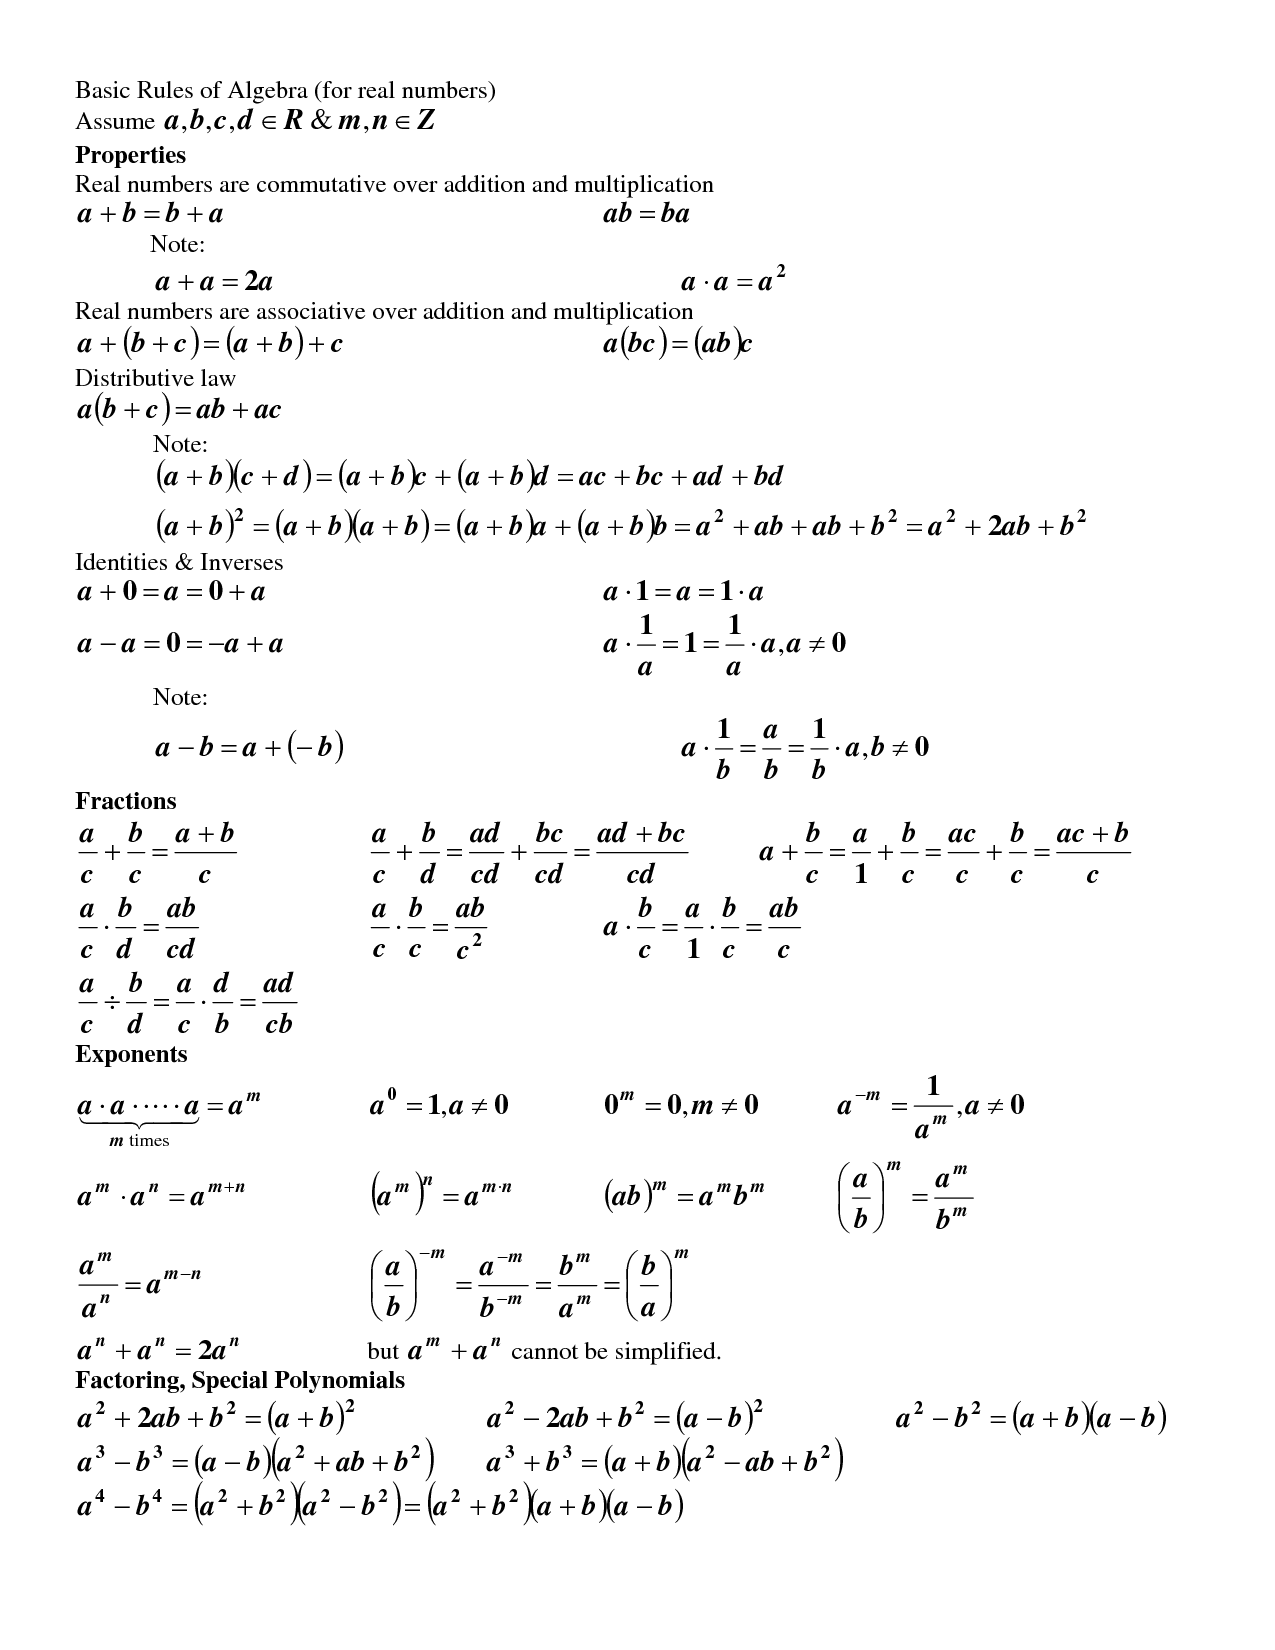 algebra rules - Google Search   -school-   Pinterest   Search and ...